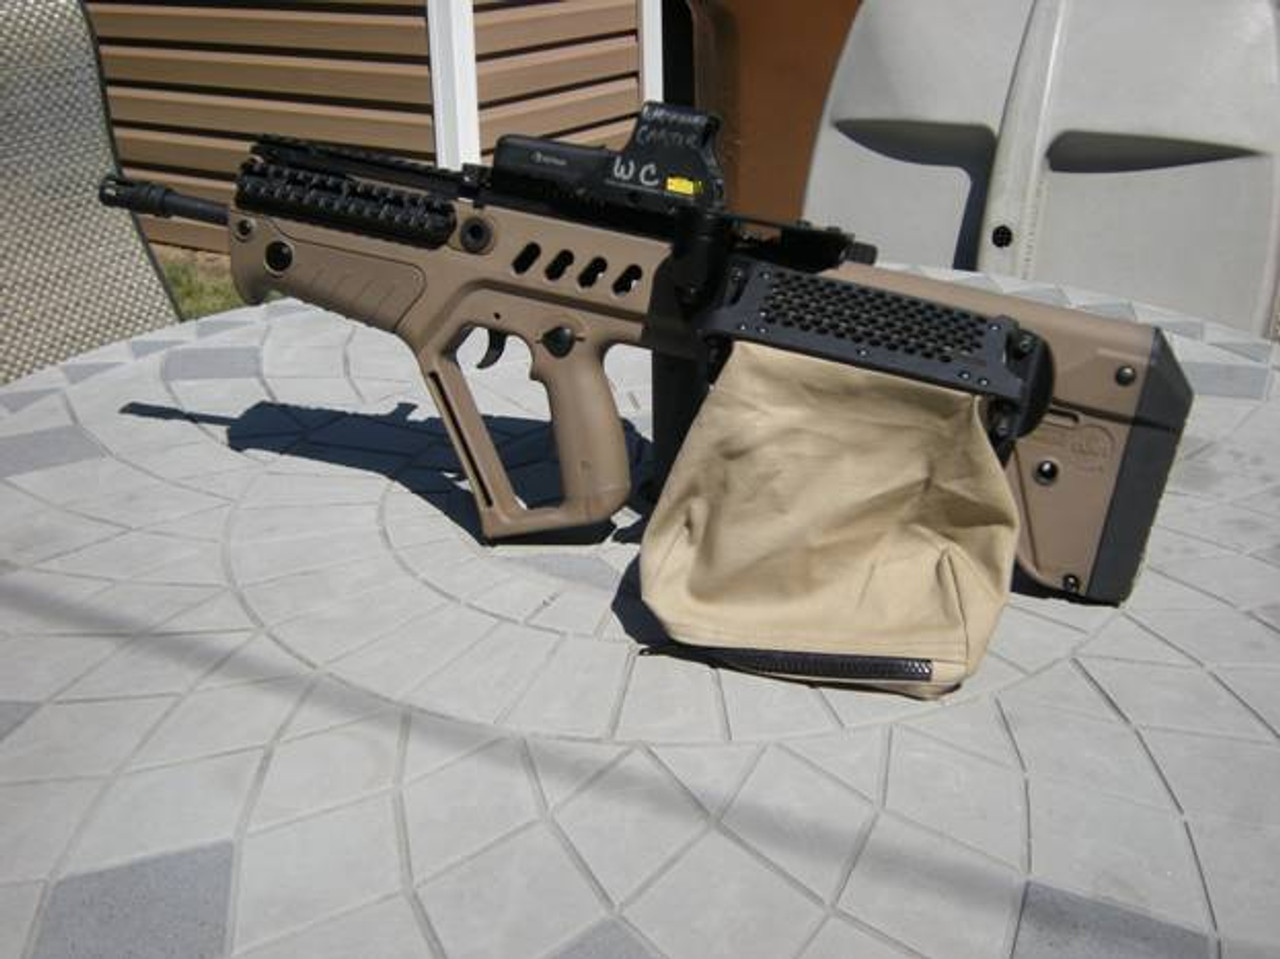 user can change TAVOR model from Right eject to Left eject using same parts and provided tools.